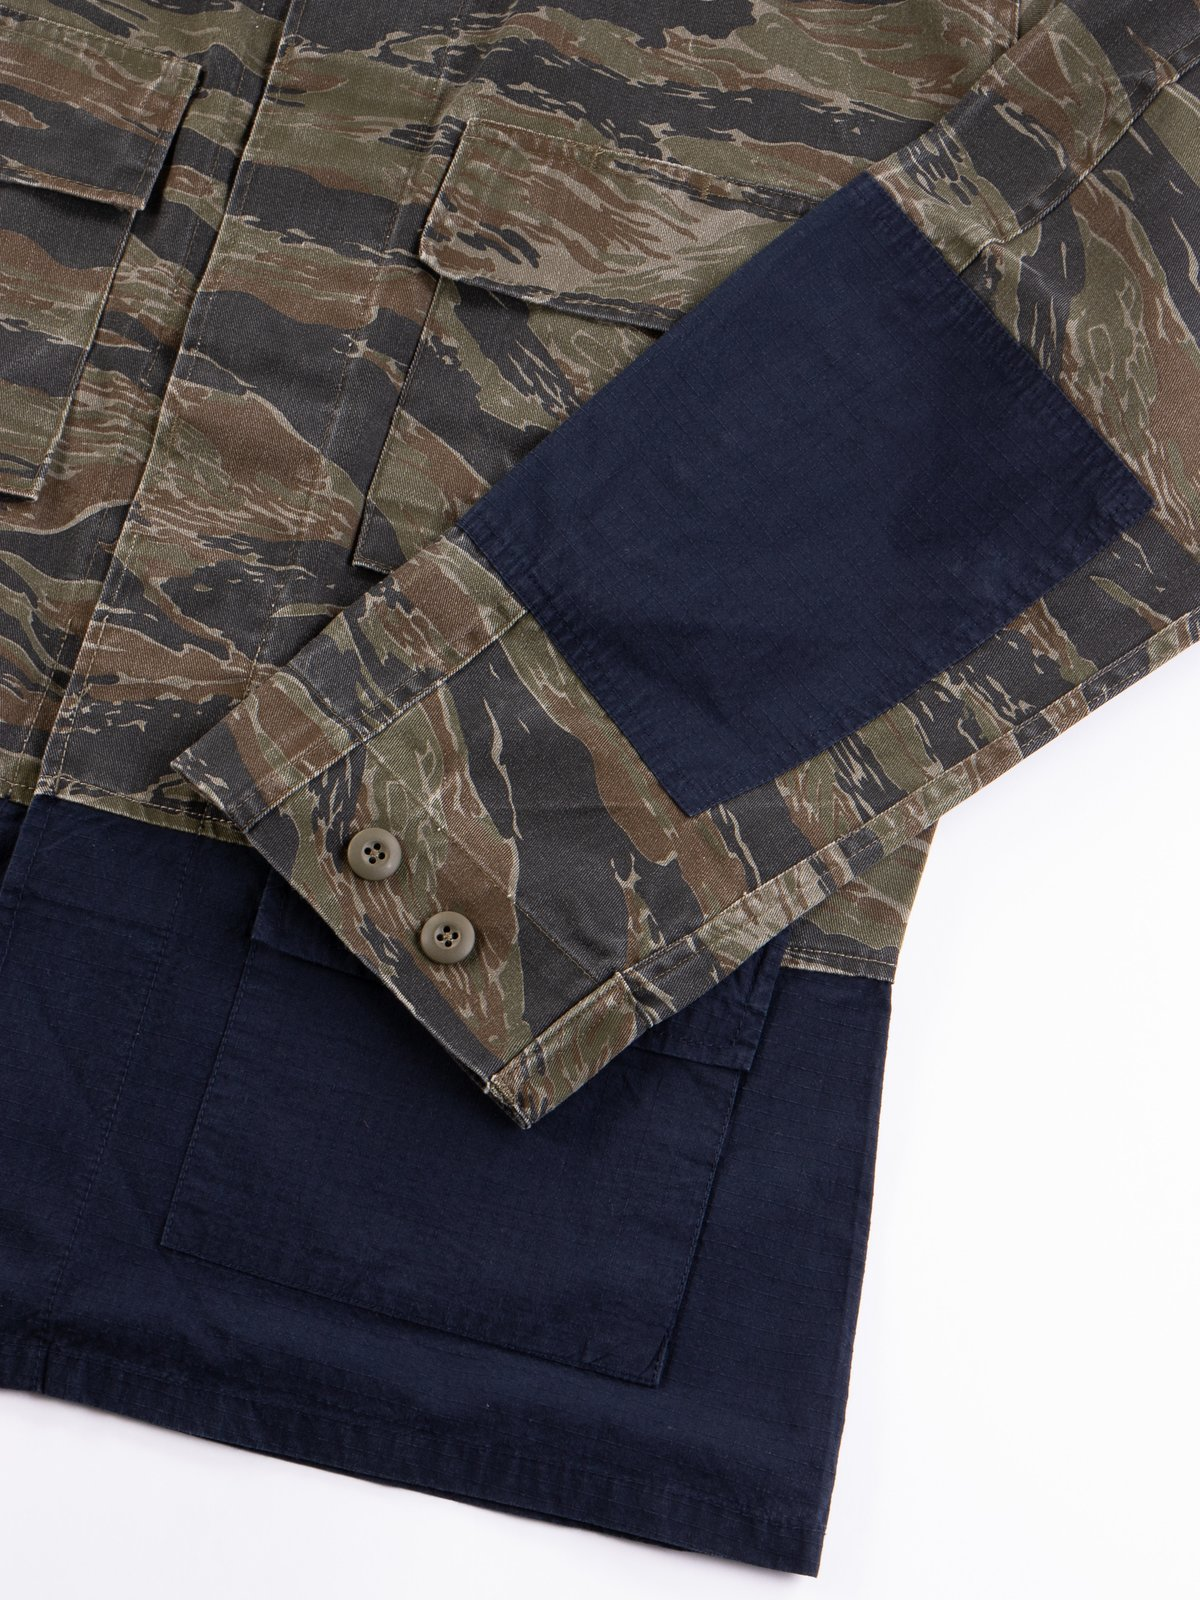 Reworks Camo/Navy Field Jacket - Image 5